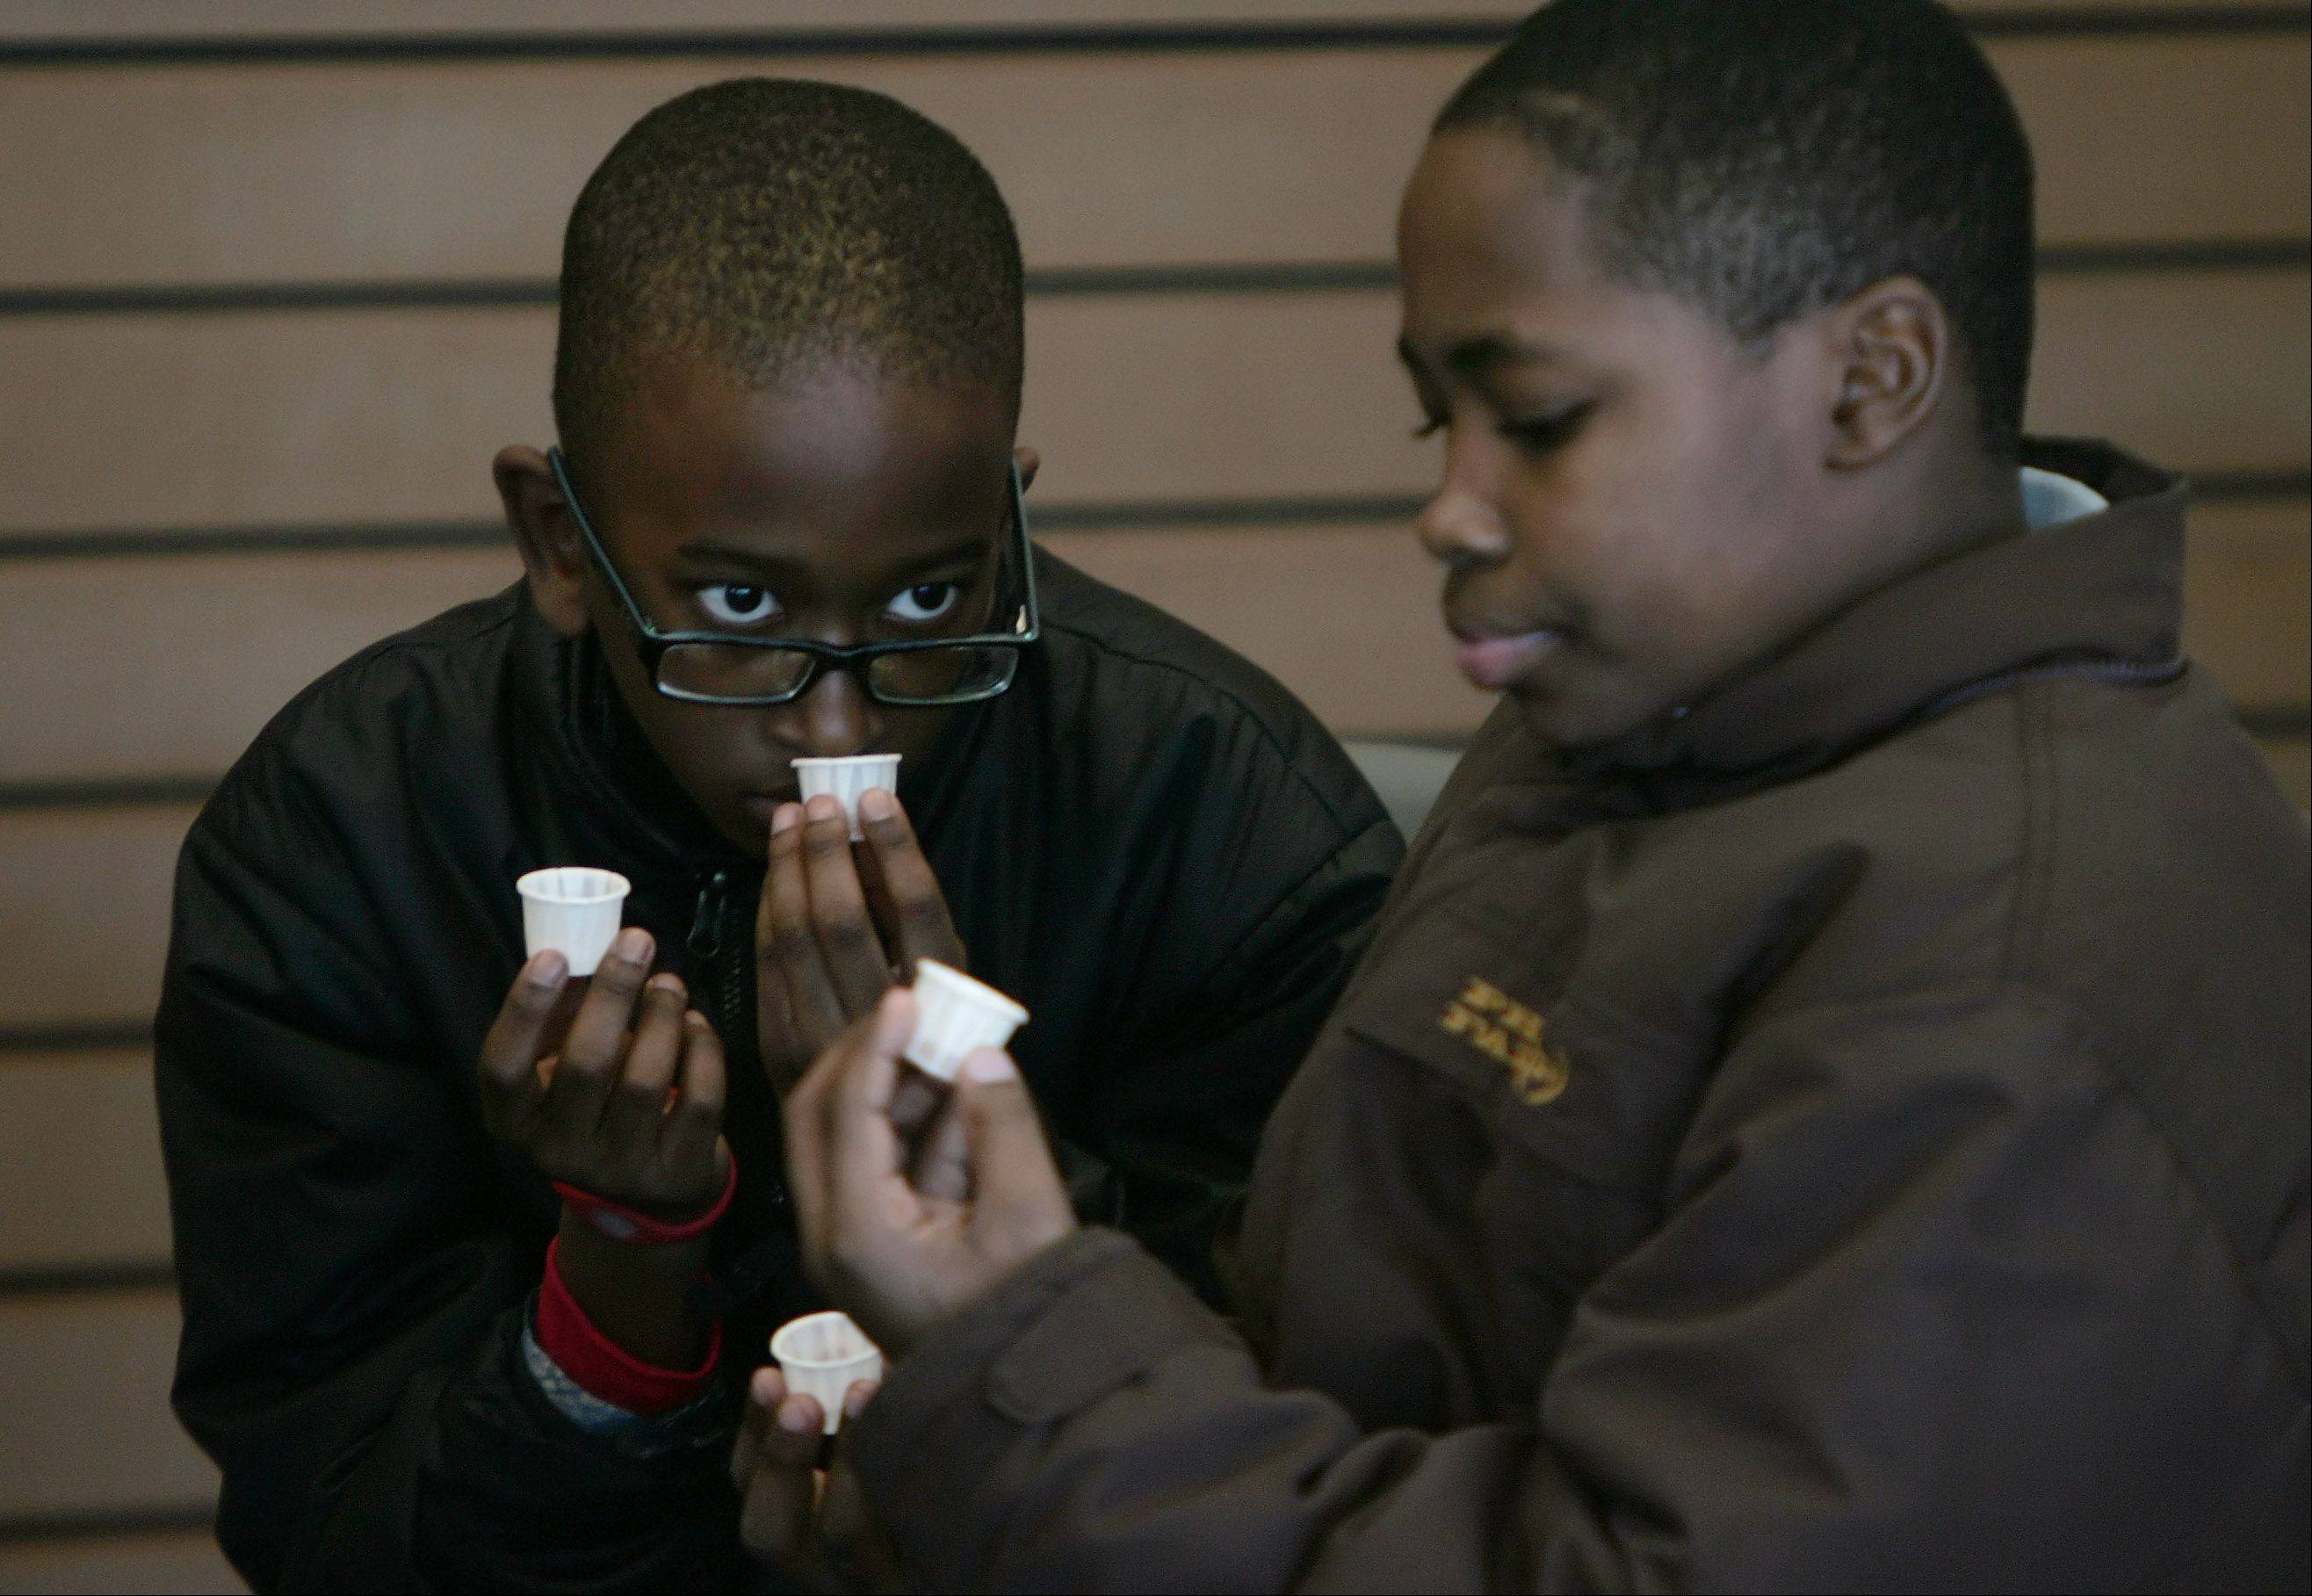 Solomon Morgan, 11, of Zion and Davonte Welch, 12, of Waukegan look at and smell maple syrup before it is cooked during the maple syrup hike Sunday at Ryerson Woods in Riverwoods. Nature enthusiasts learned how maple syrup is collected and made during a hike through the forest.